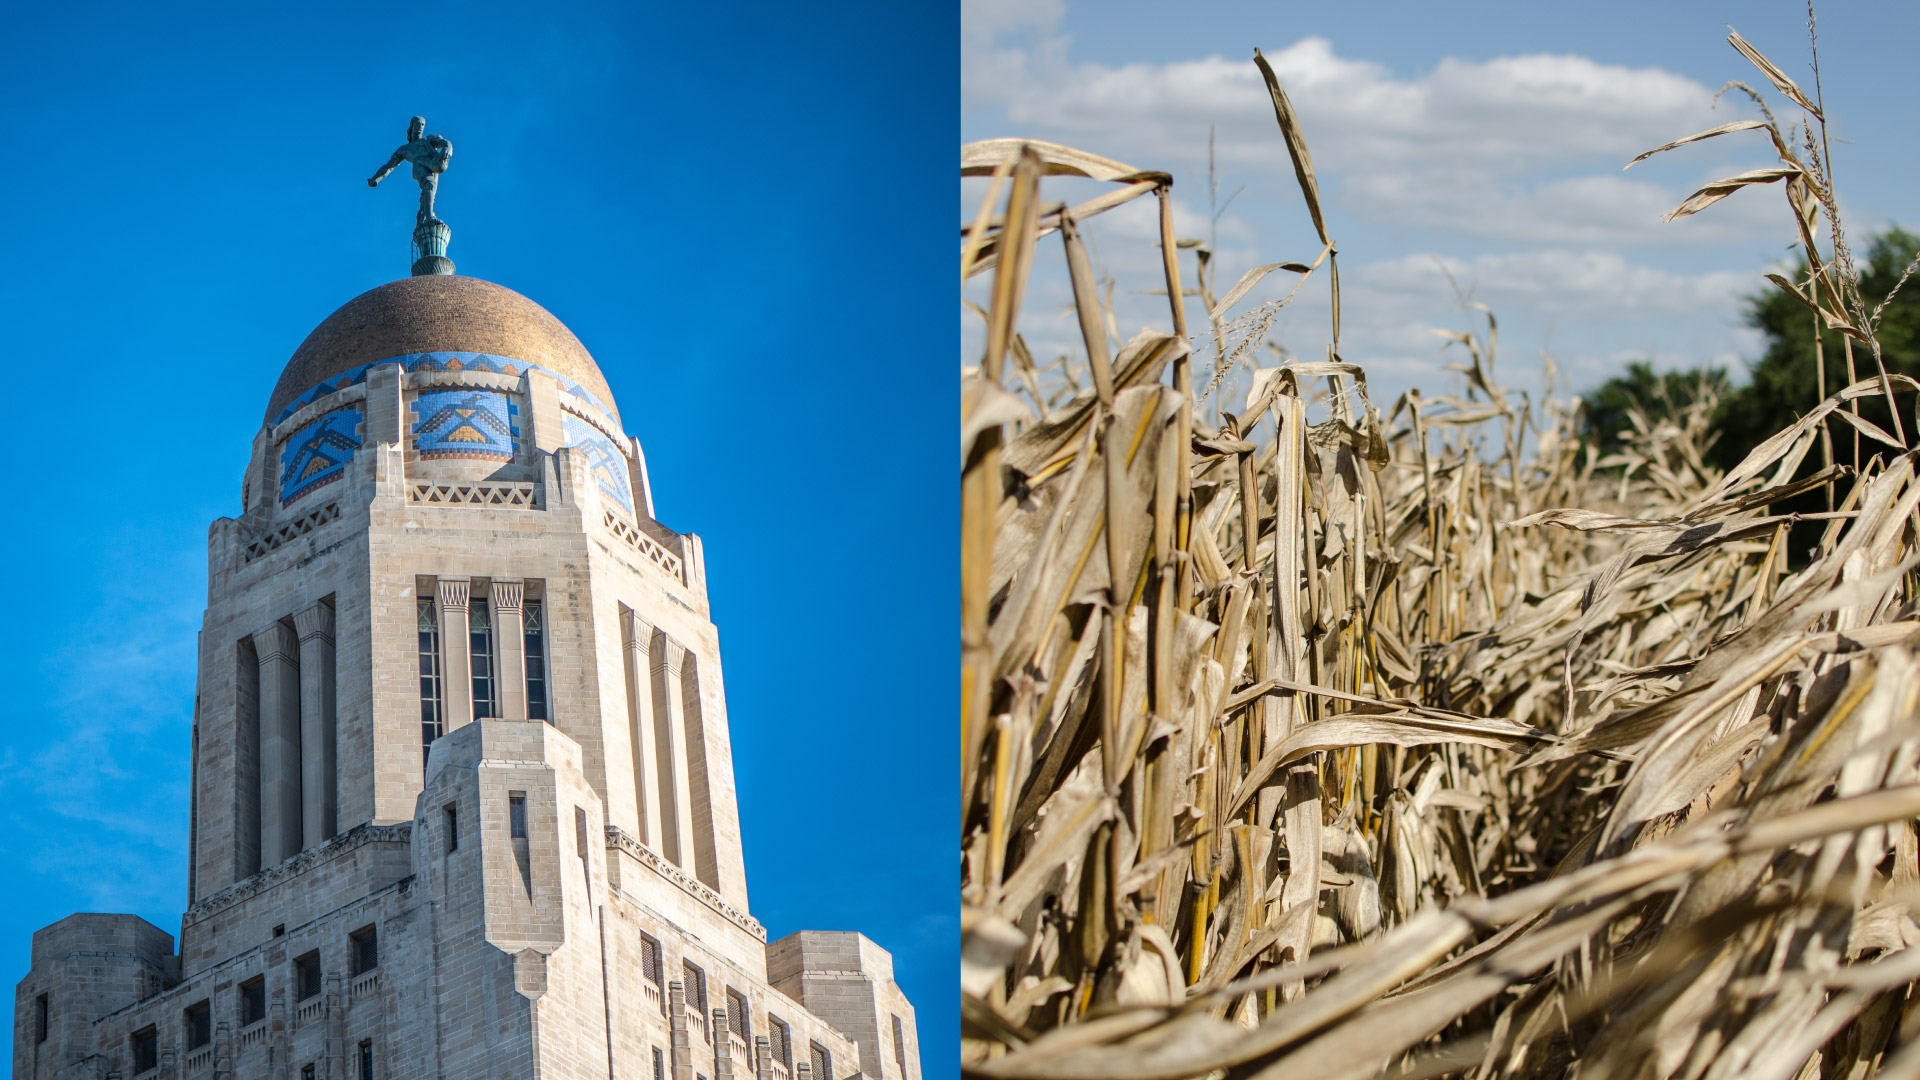 Lincoln Capitol and Cornfield for Theobald Campaign Agency 877